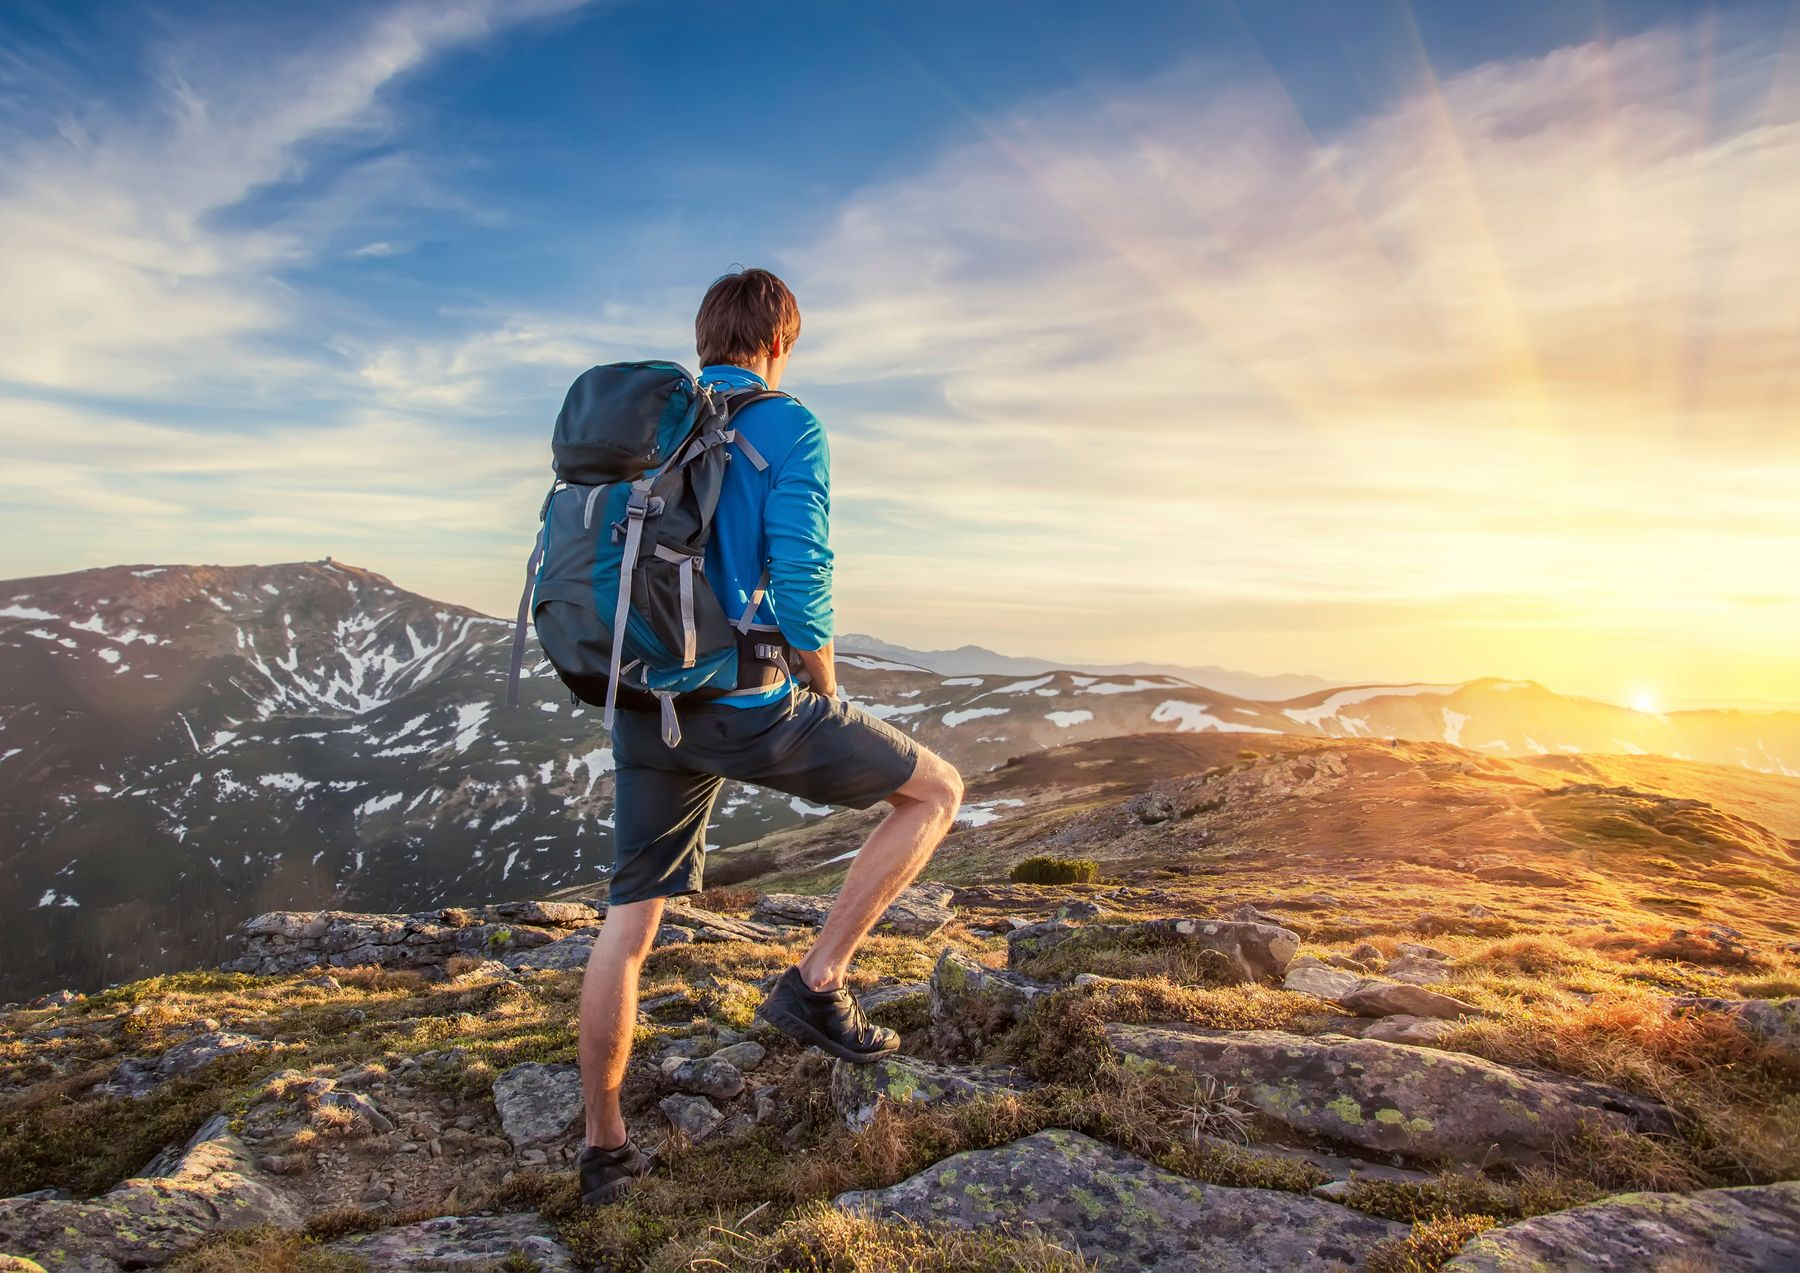 Man standing on a hill, getting ready to explore: something we can look forward to if we plan a trip a year in advance